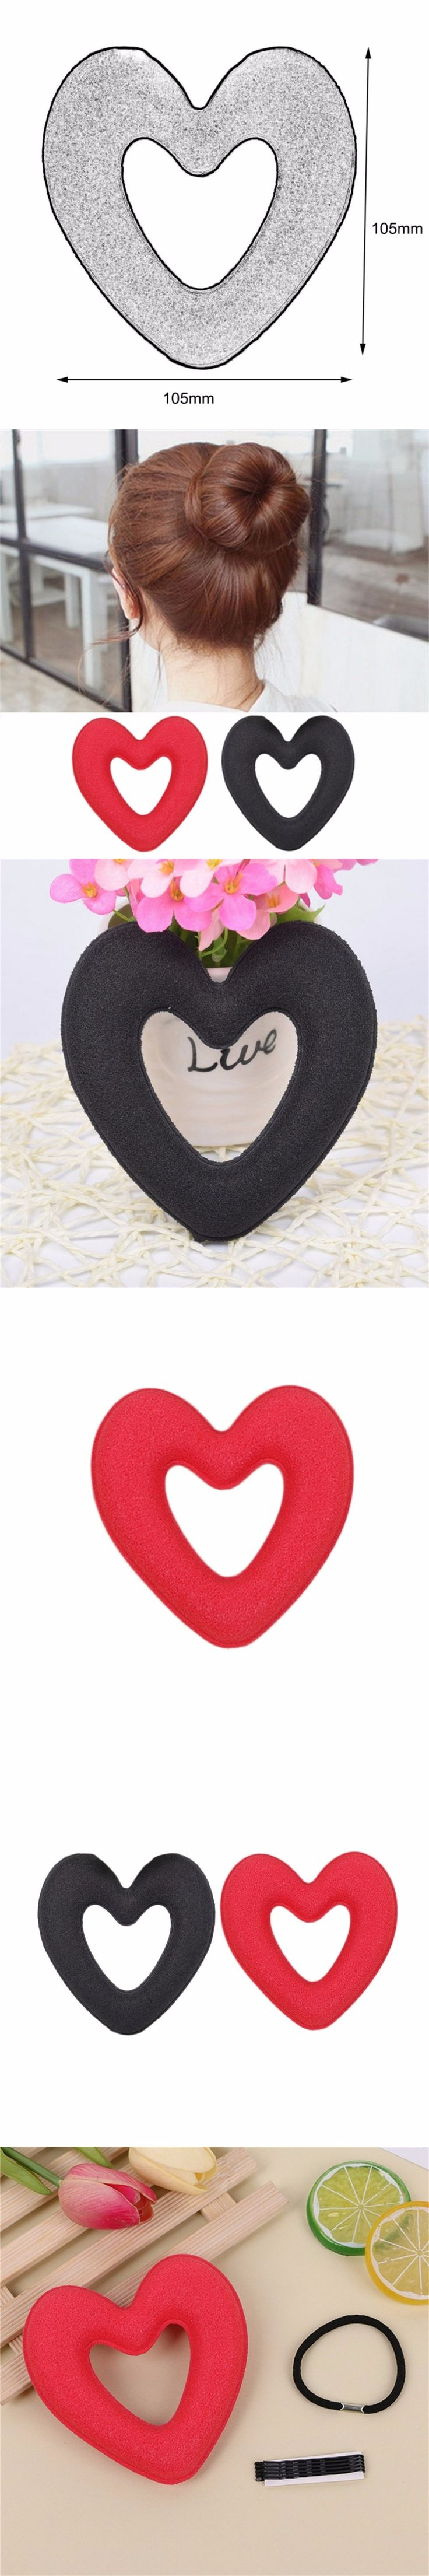 Korean Style Heart-Shaped Doughnuts Lady Lovely New Hair Bud Hair Braiding Tools Hair Braider Hair Styling Tools Hot New